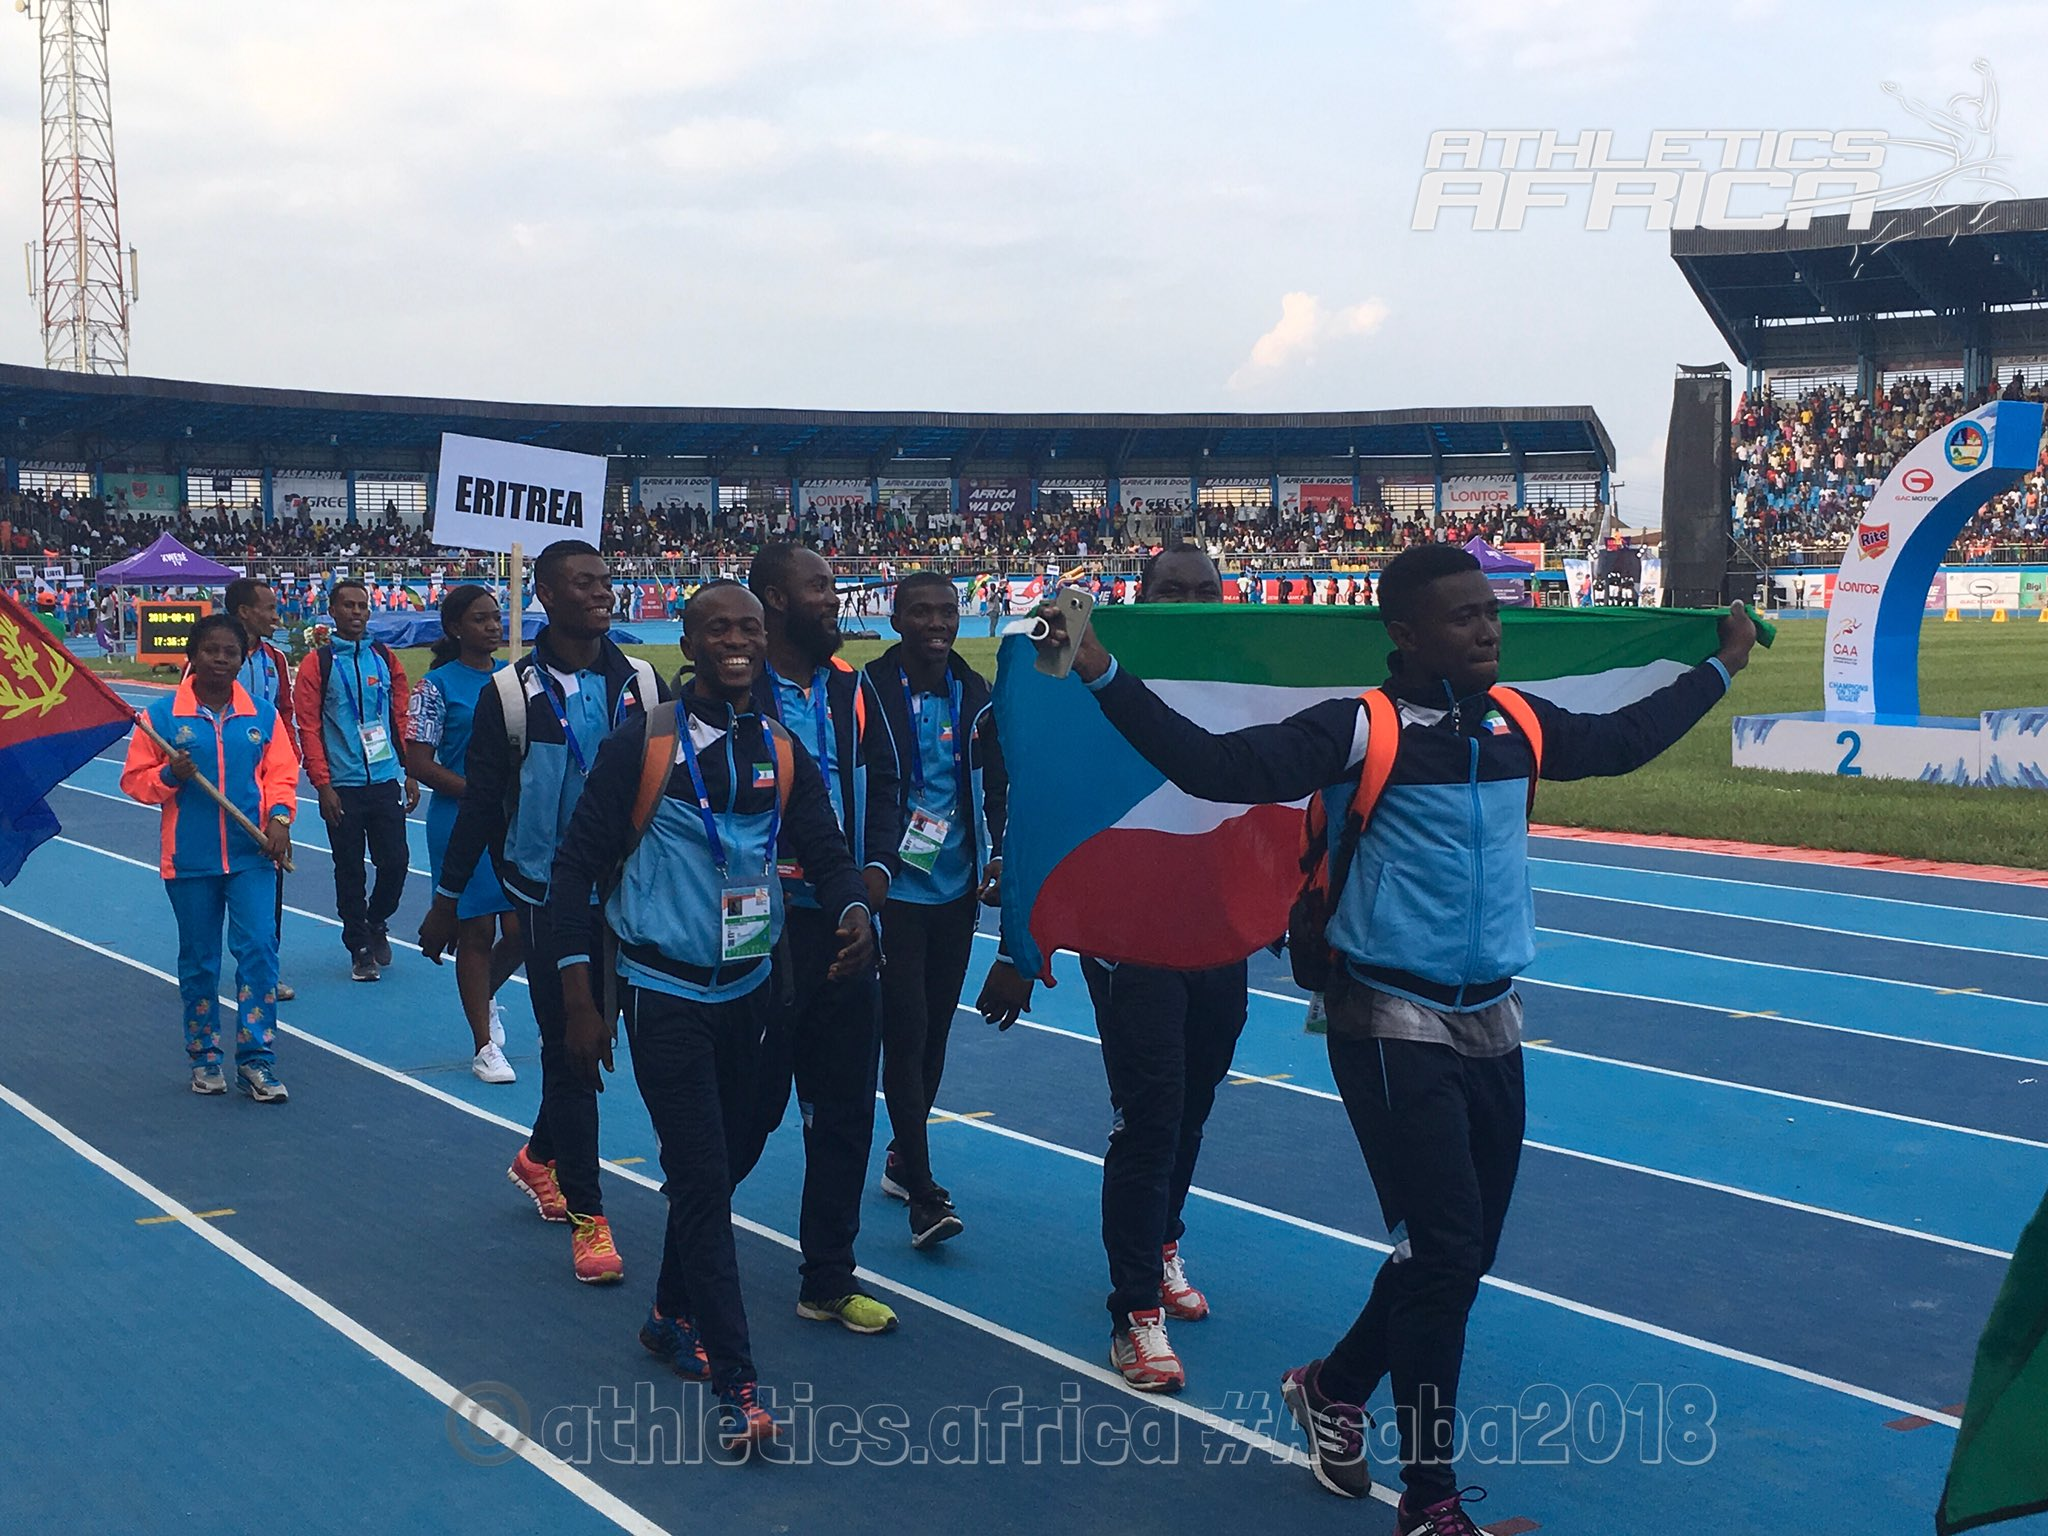 #Photo gallery: Opening ceremony and team parade - 2018 CAA Africa Senior Athletics Championships in Asaba, Nigeria.   #Asaba2018 #AthleticsAfrica @caaasaba2018 @iaafostrava2018 #Athletics https://t.co/txdC0PzXjh